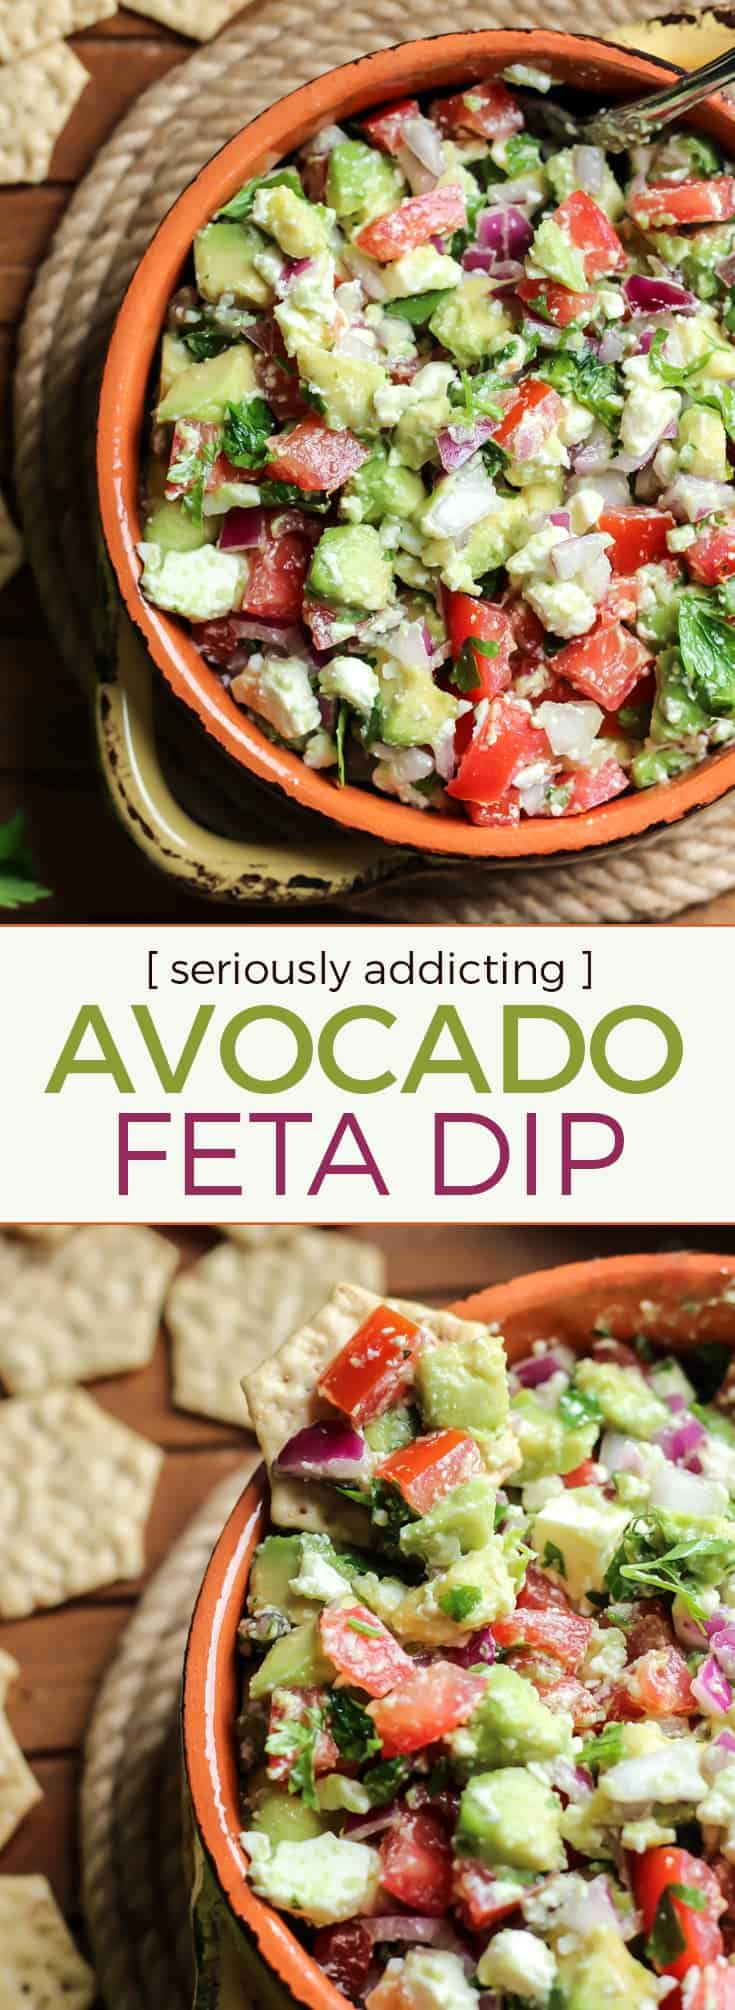 Easy Avocado Feta Dip pinterest image fit mitten kitchen